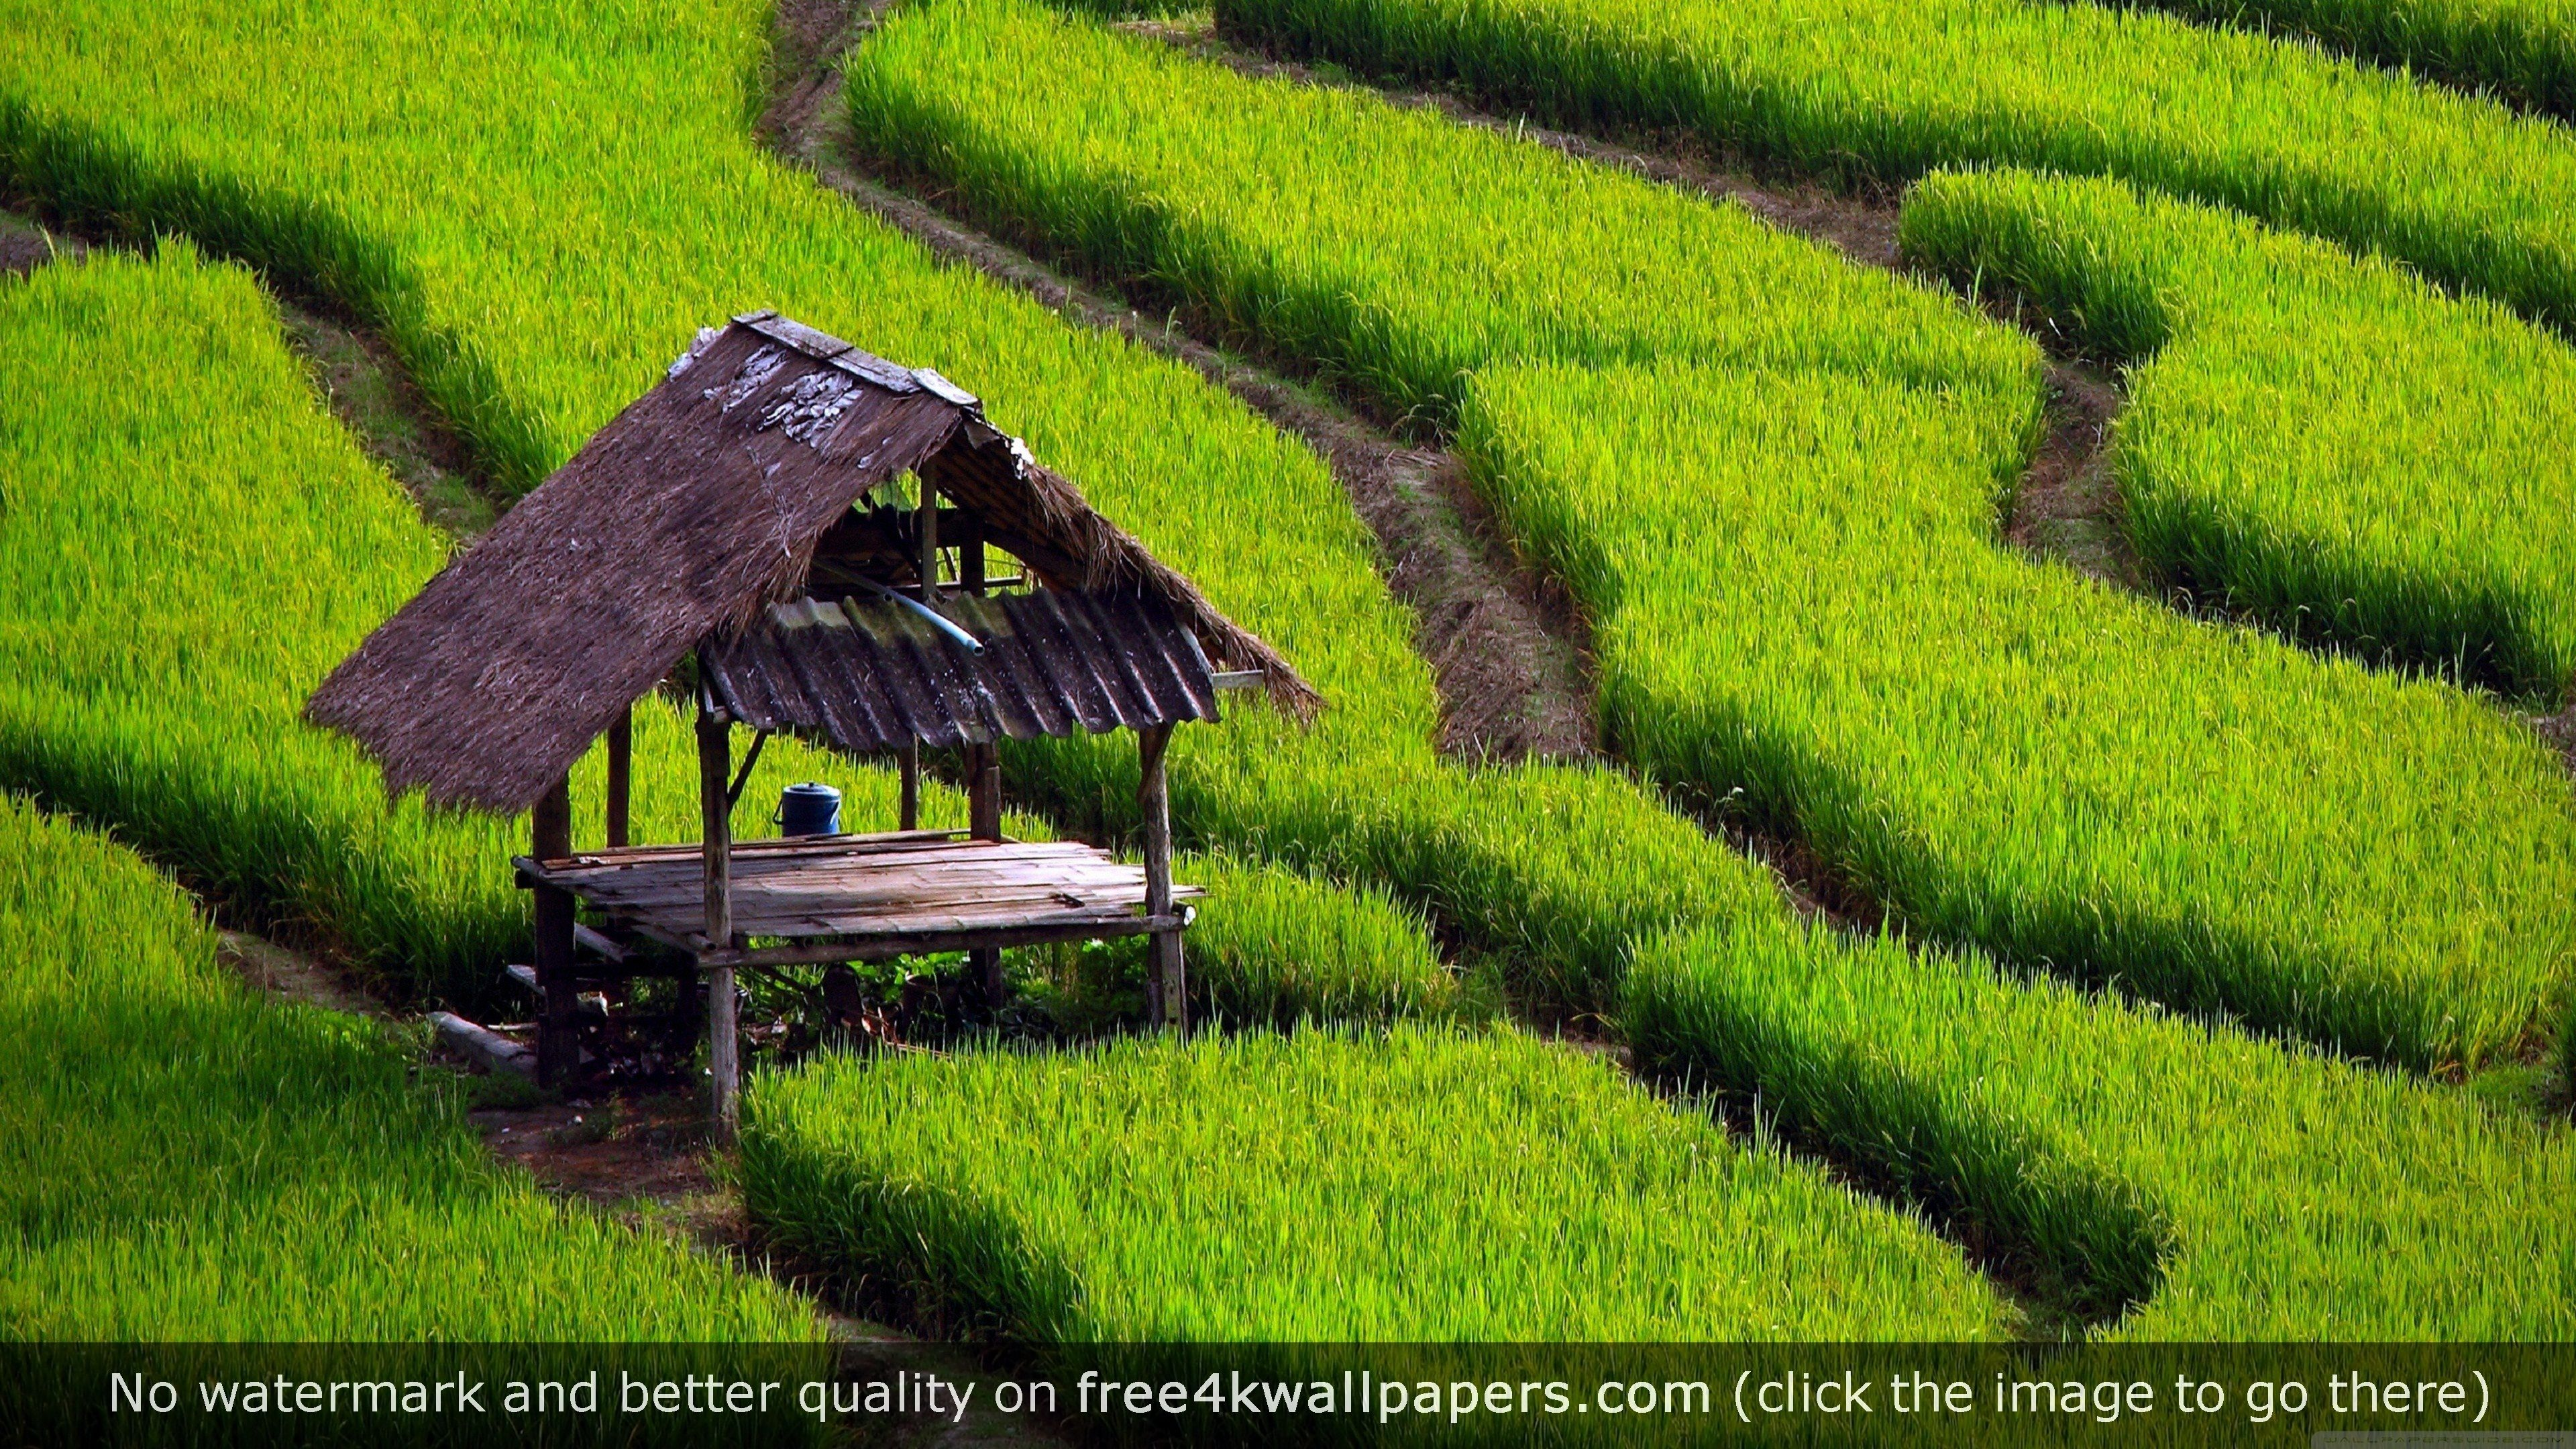 Rice Field Landscape 4k Wallpaper Landscape Wallpaper Scenery Landscape